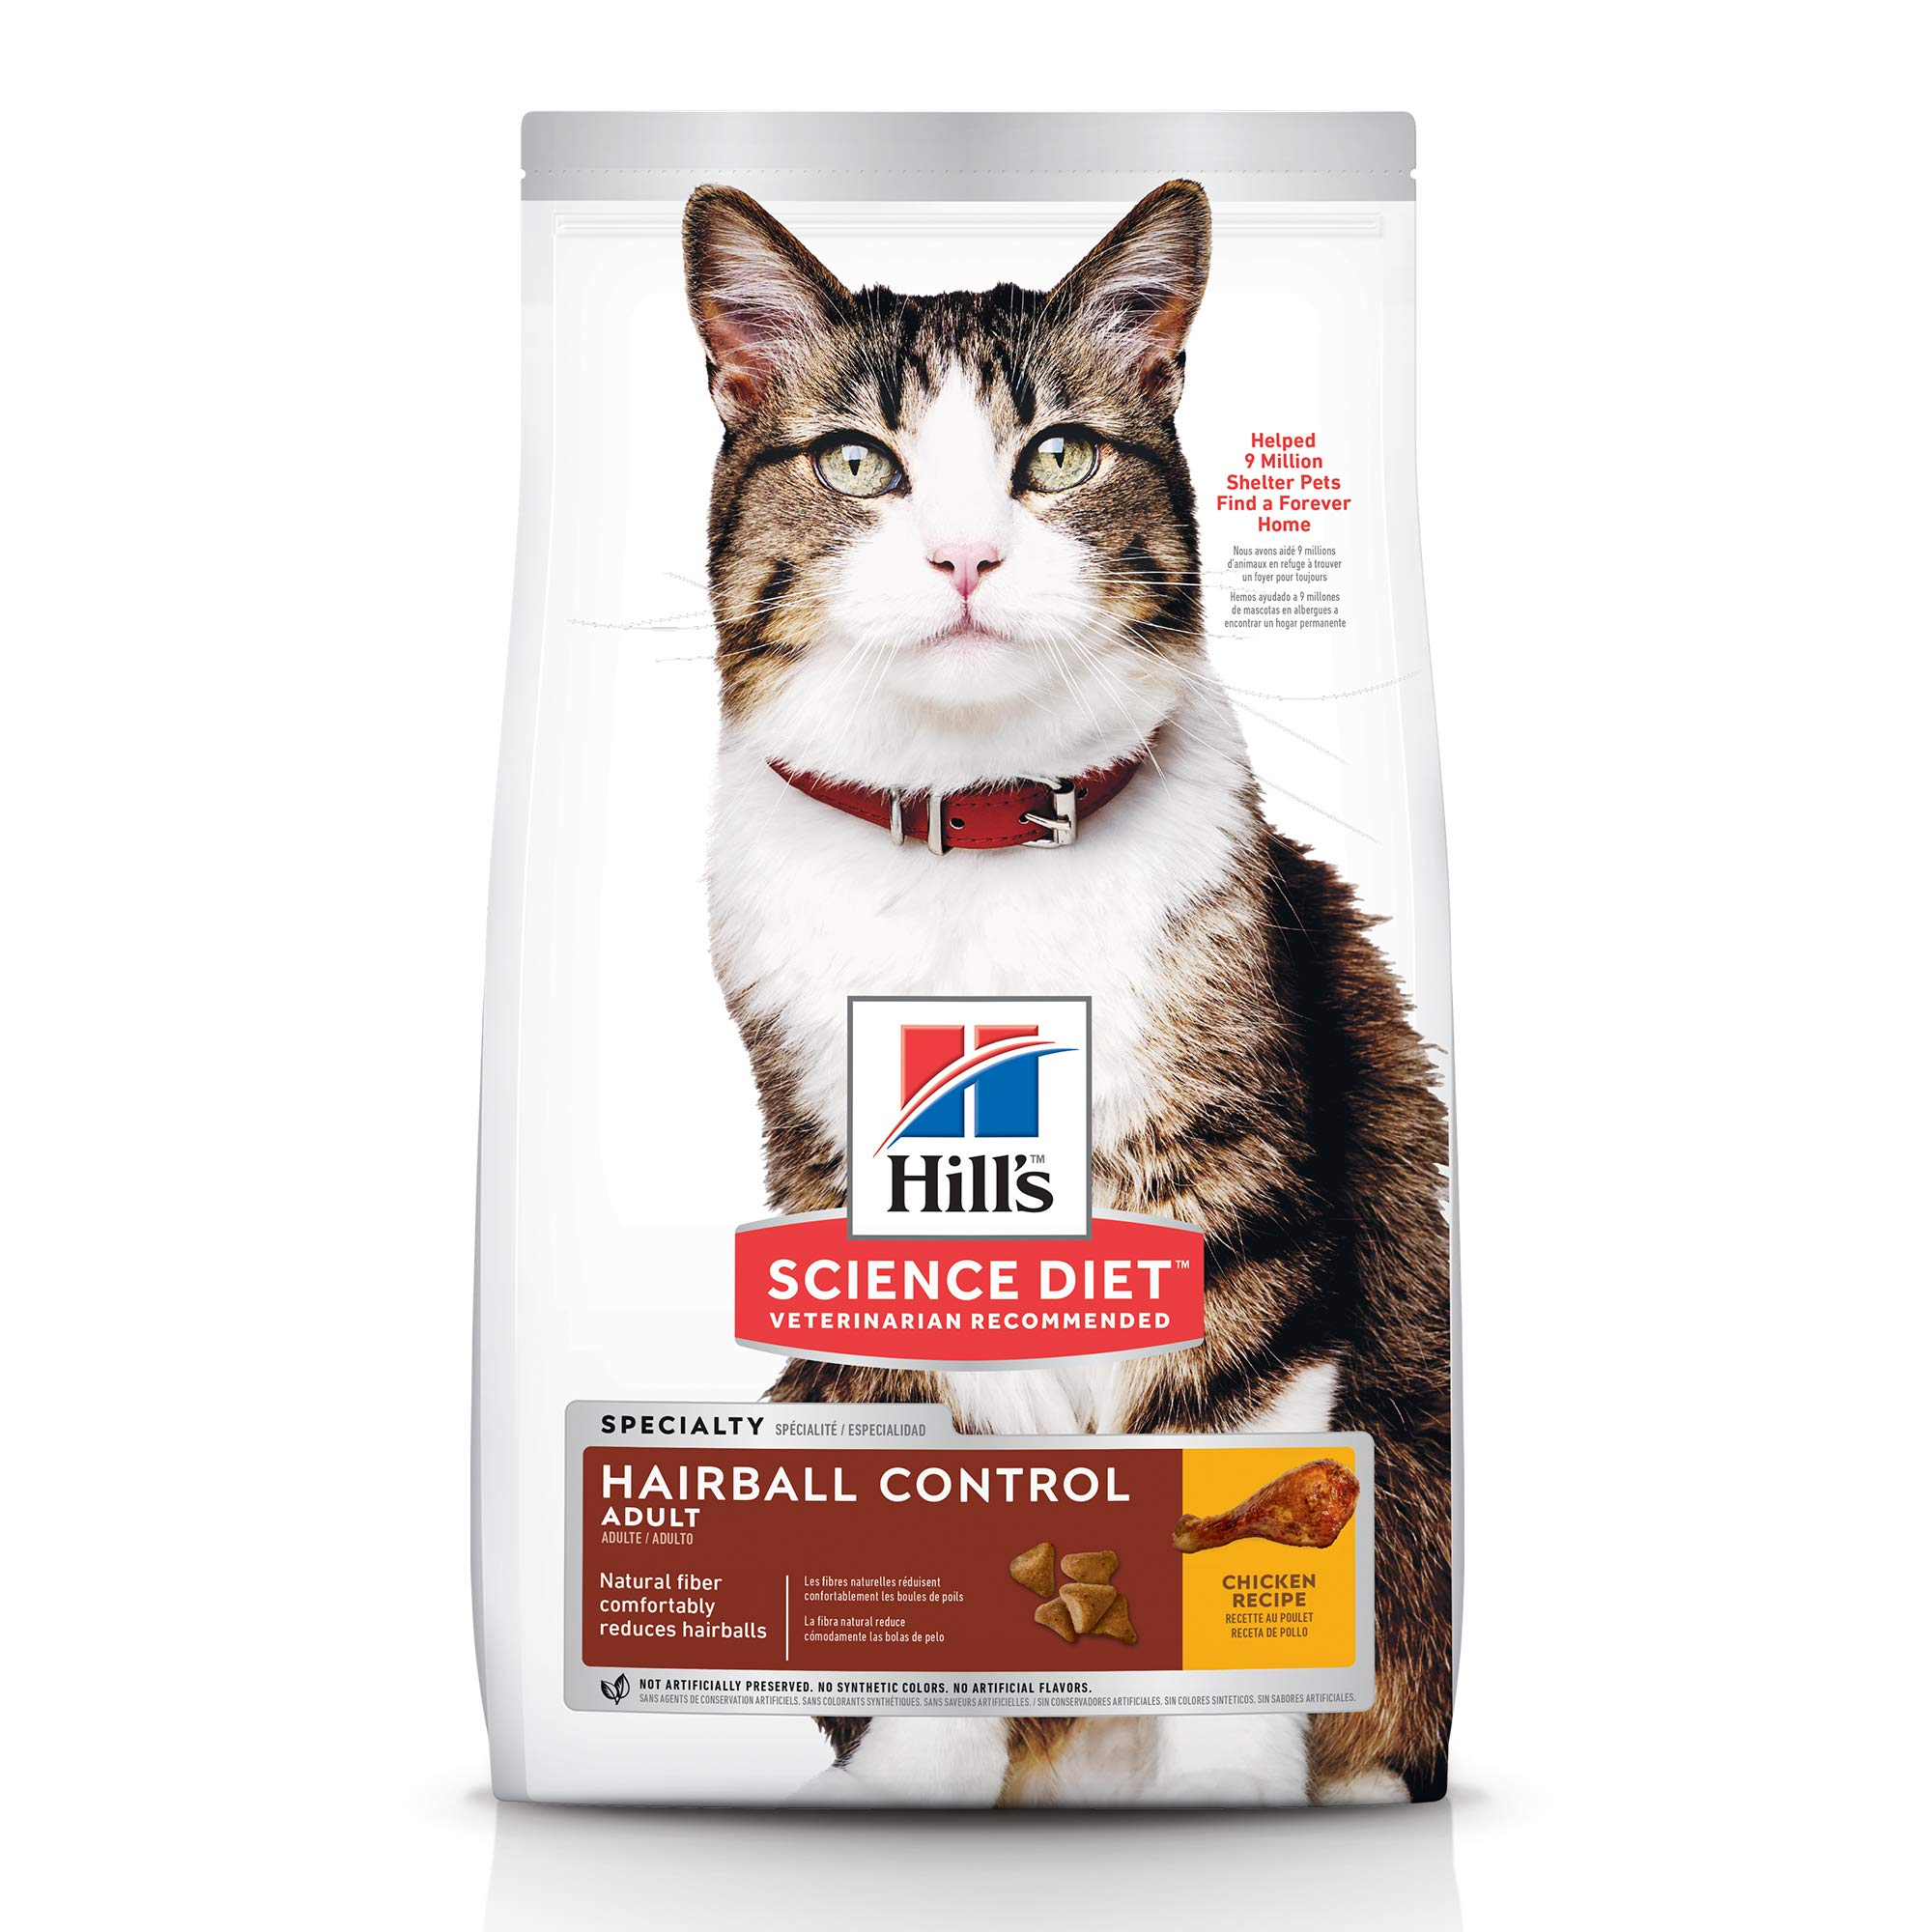 Hill's Science Diet Dry Cat Food, Adult, Hairball Control, Chicken Recipe, 15.5 lb Bag by Hill's Science Diet